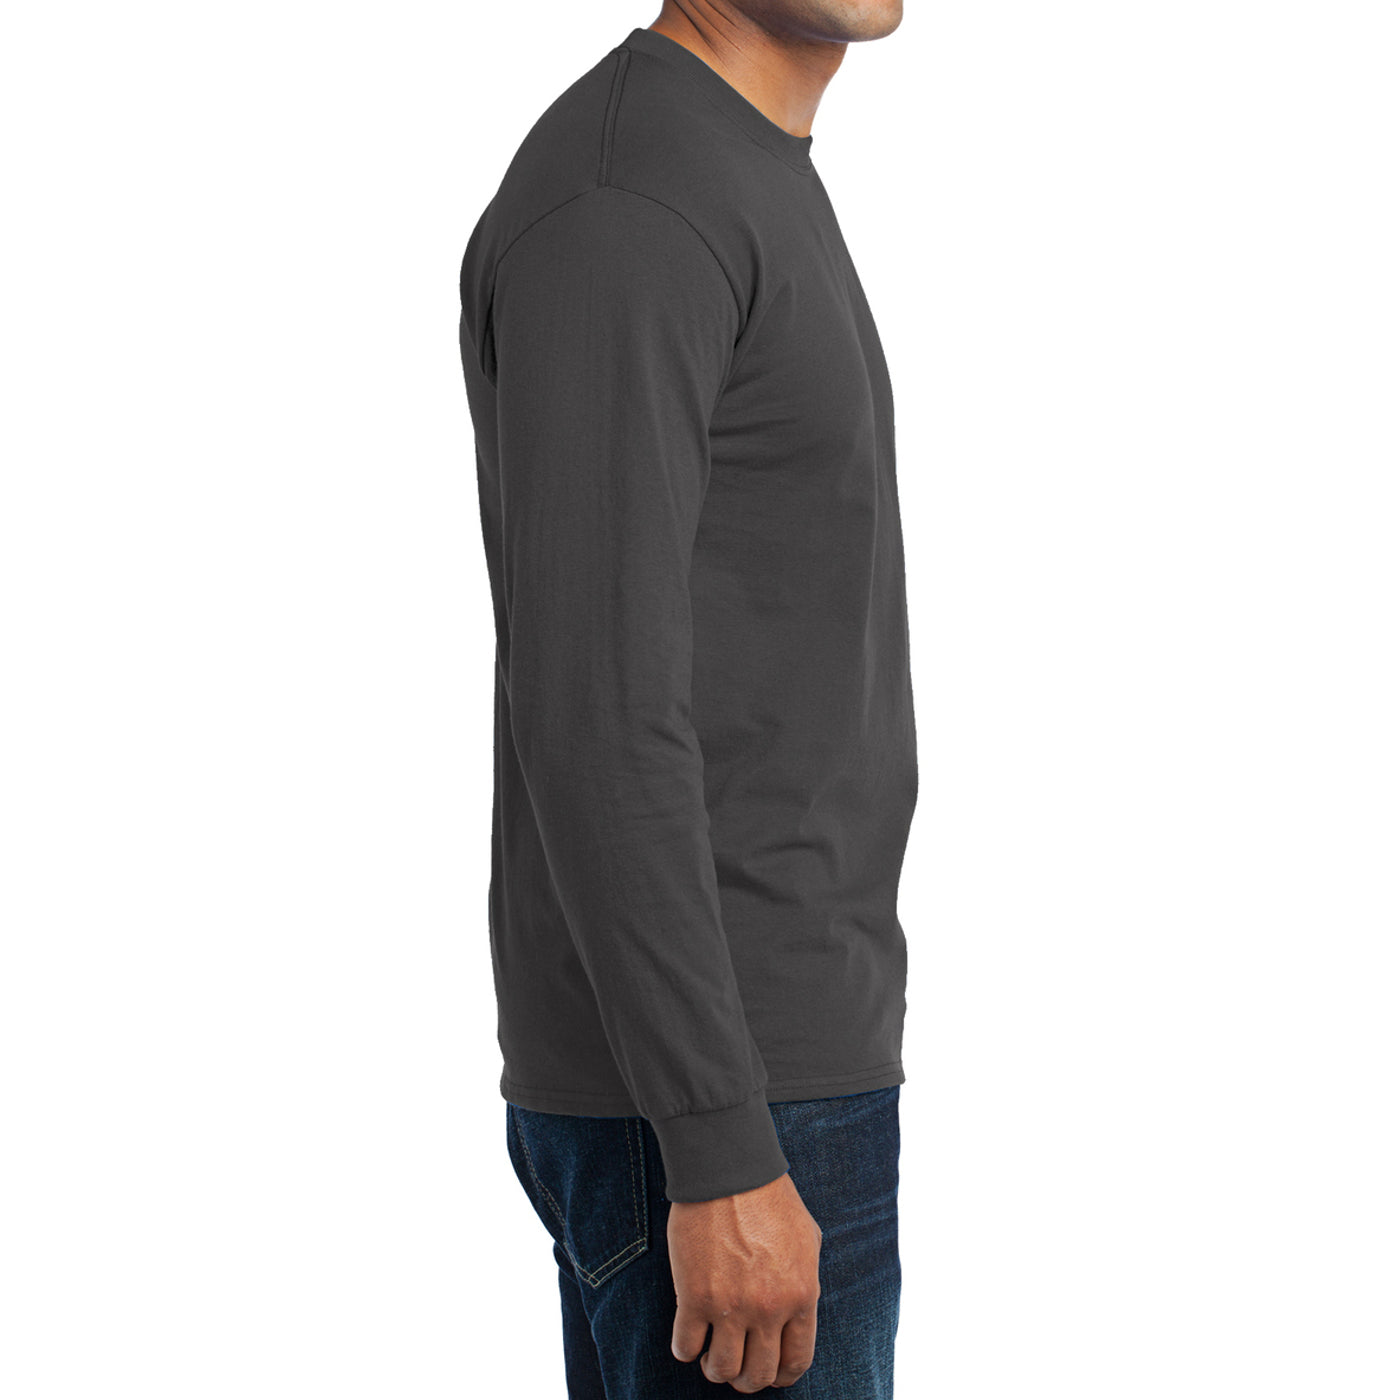 Men's Long Sleeve Core Blend Tee - Charcoal – Side